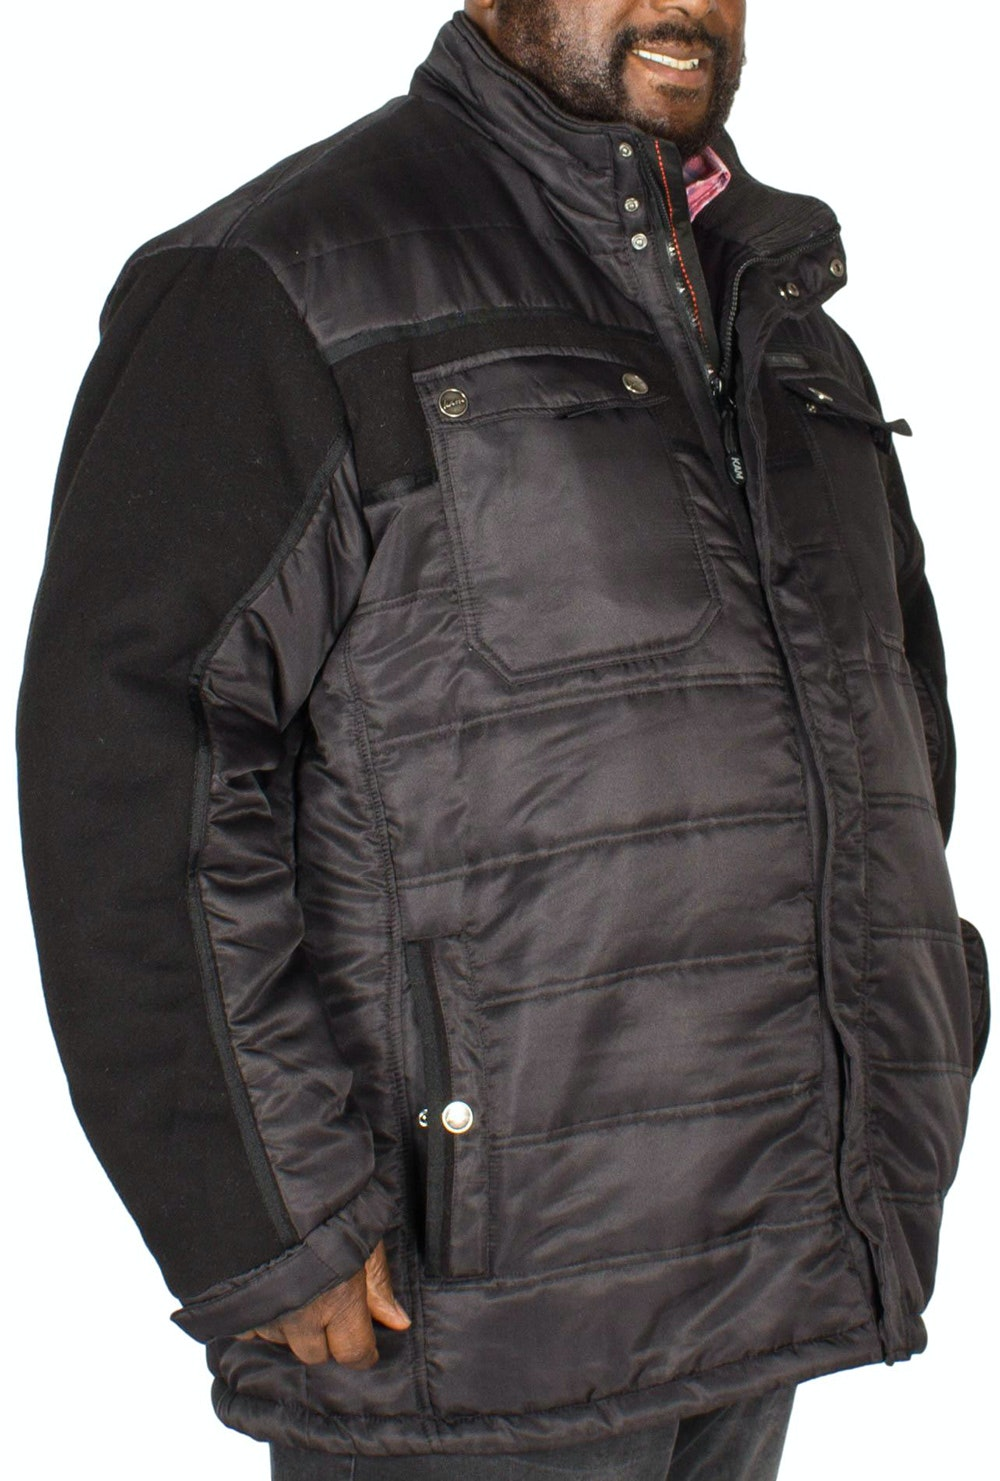 KAM Padded Jacket With Fleece Sleeves